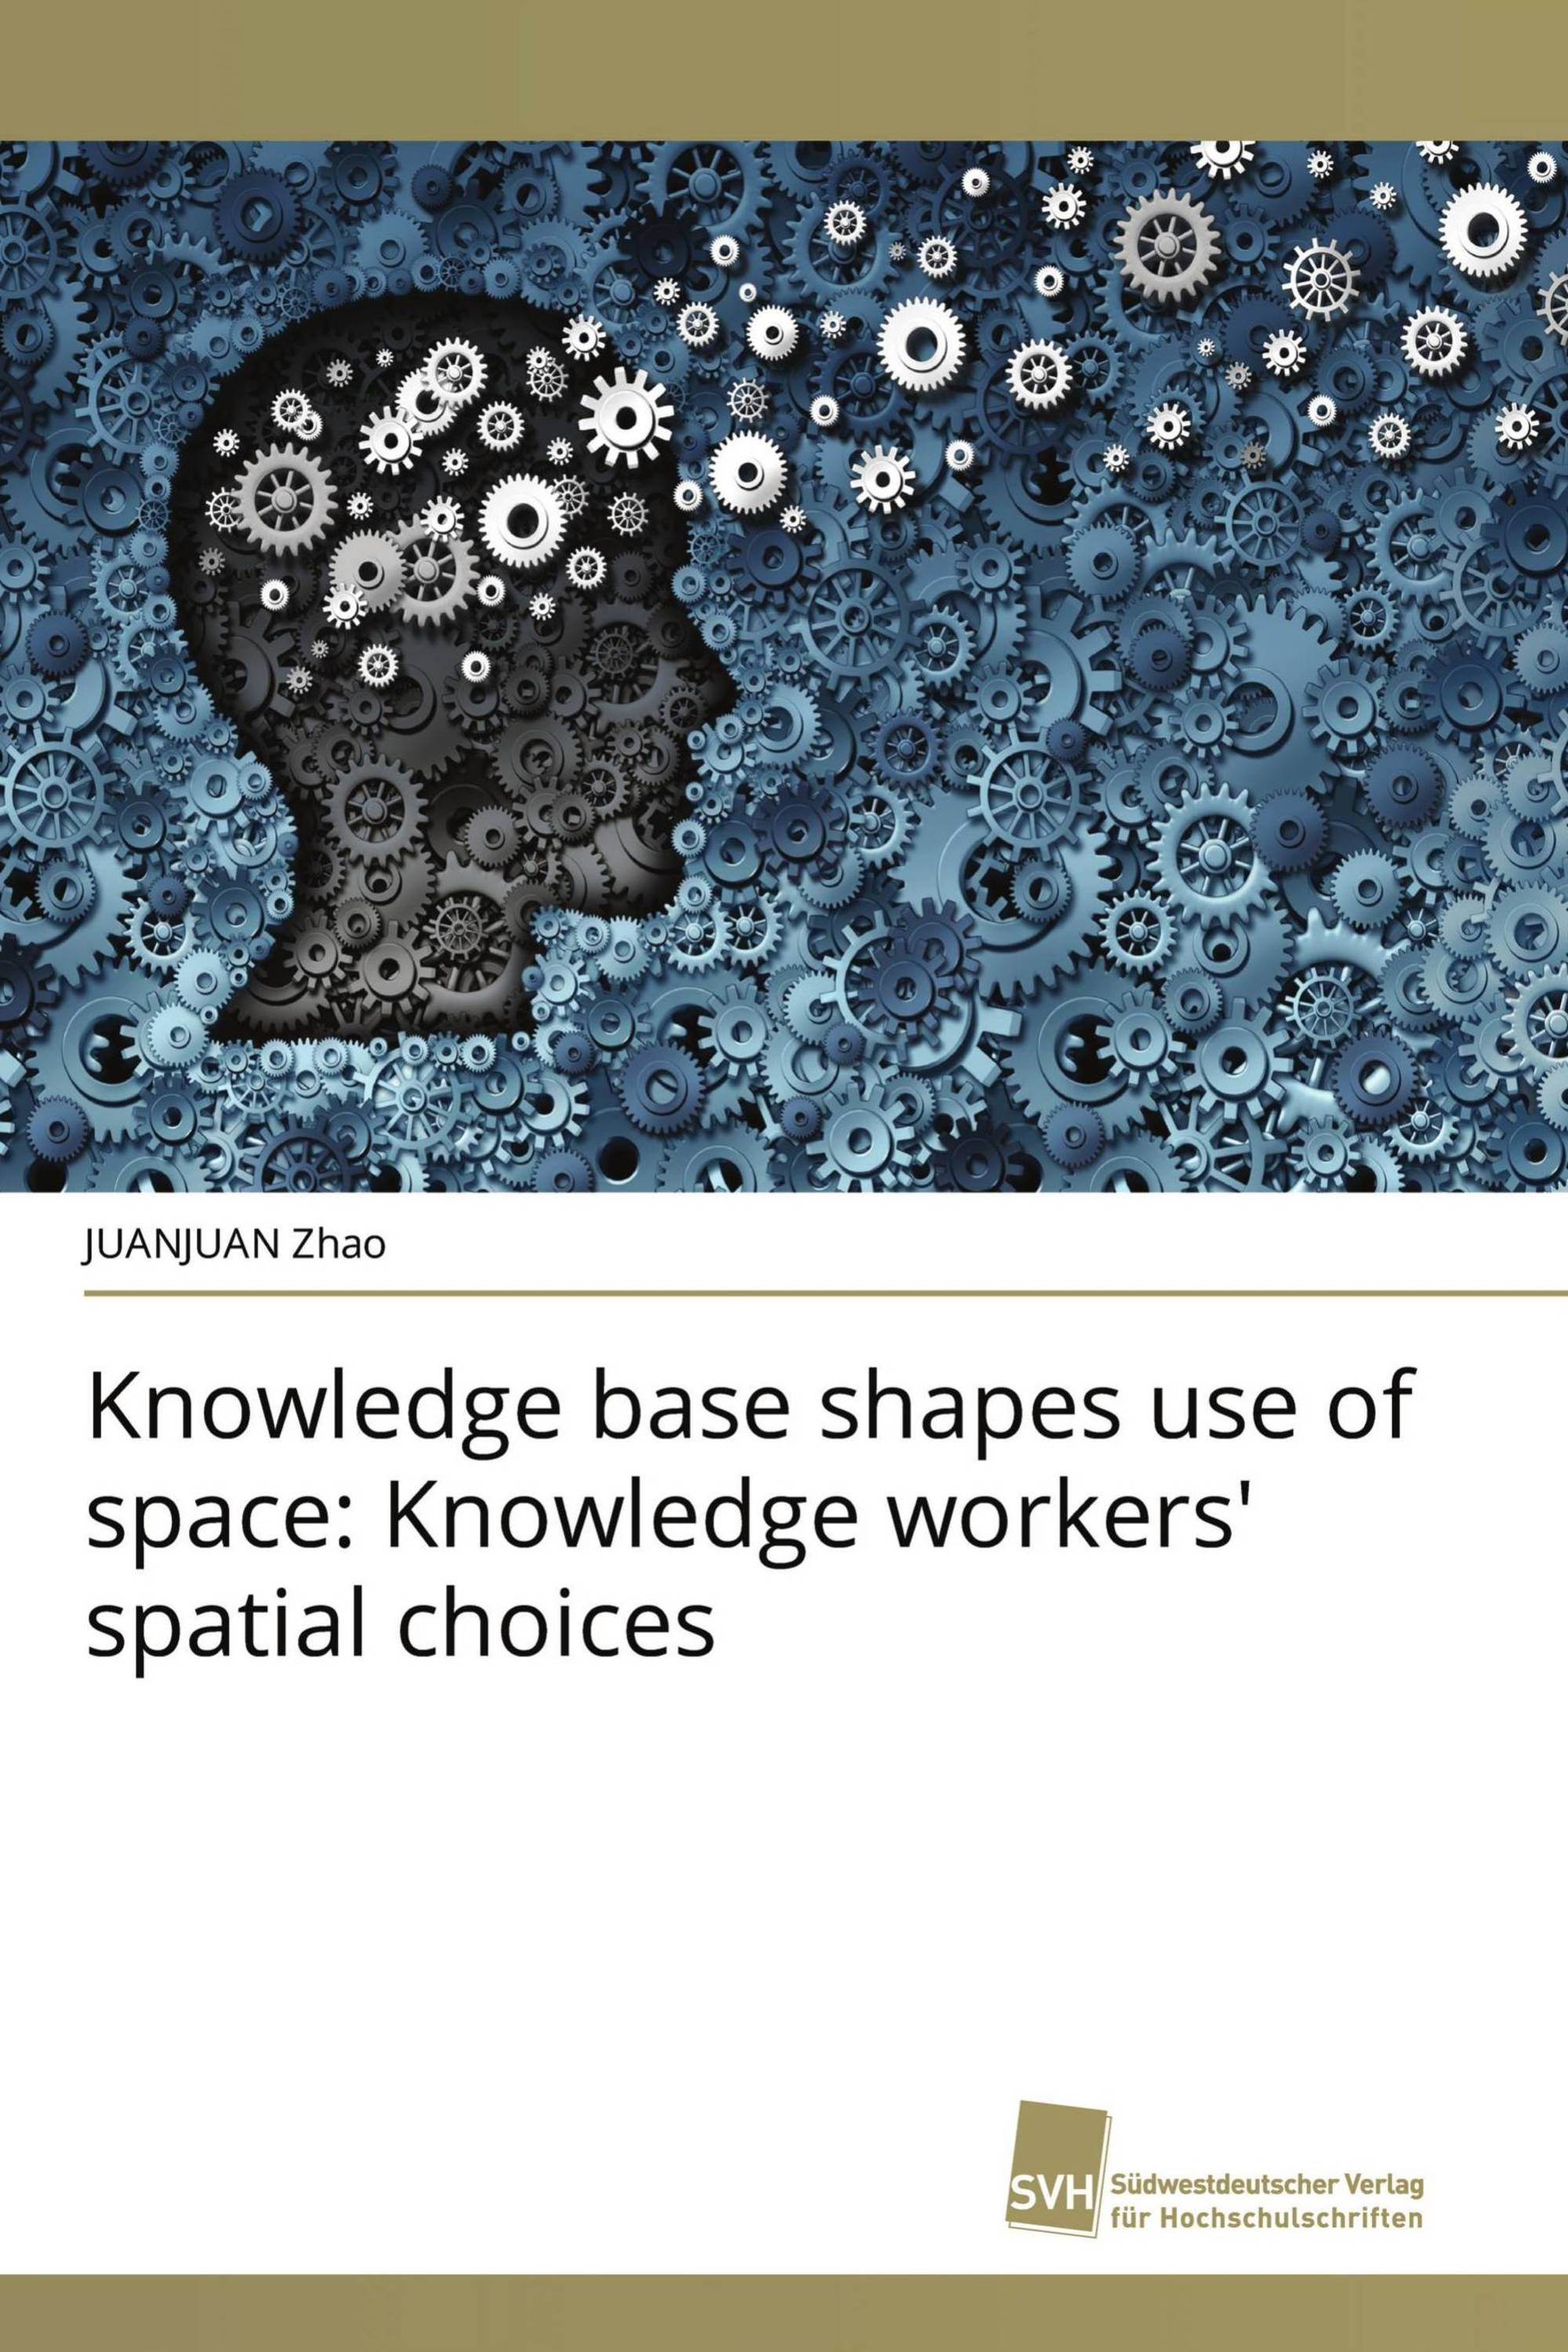 Knowledge base shapes use of space: Knowledge workers' spatial choices